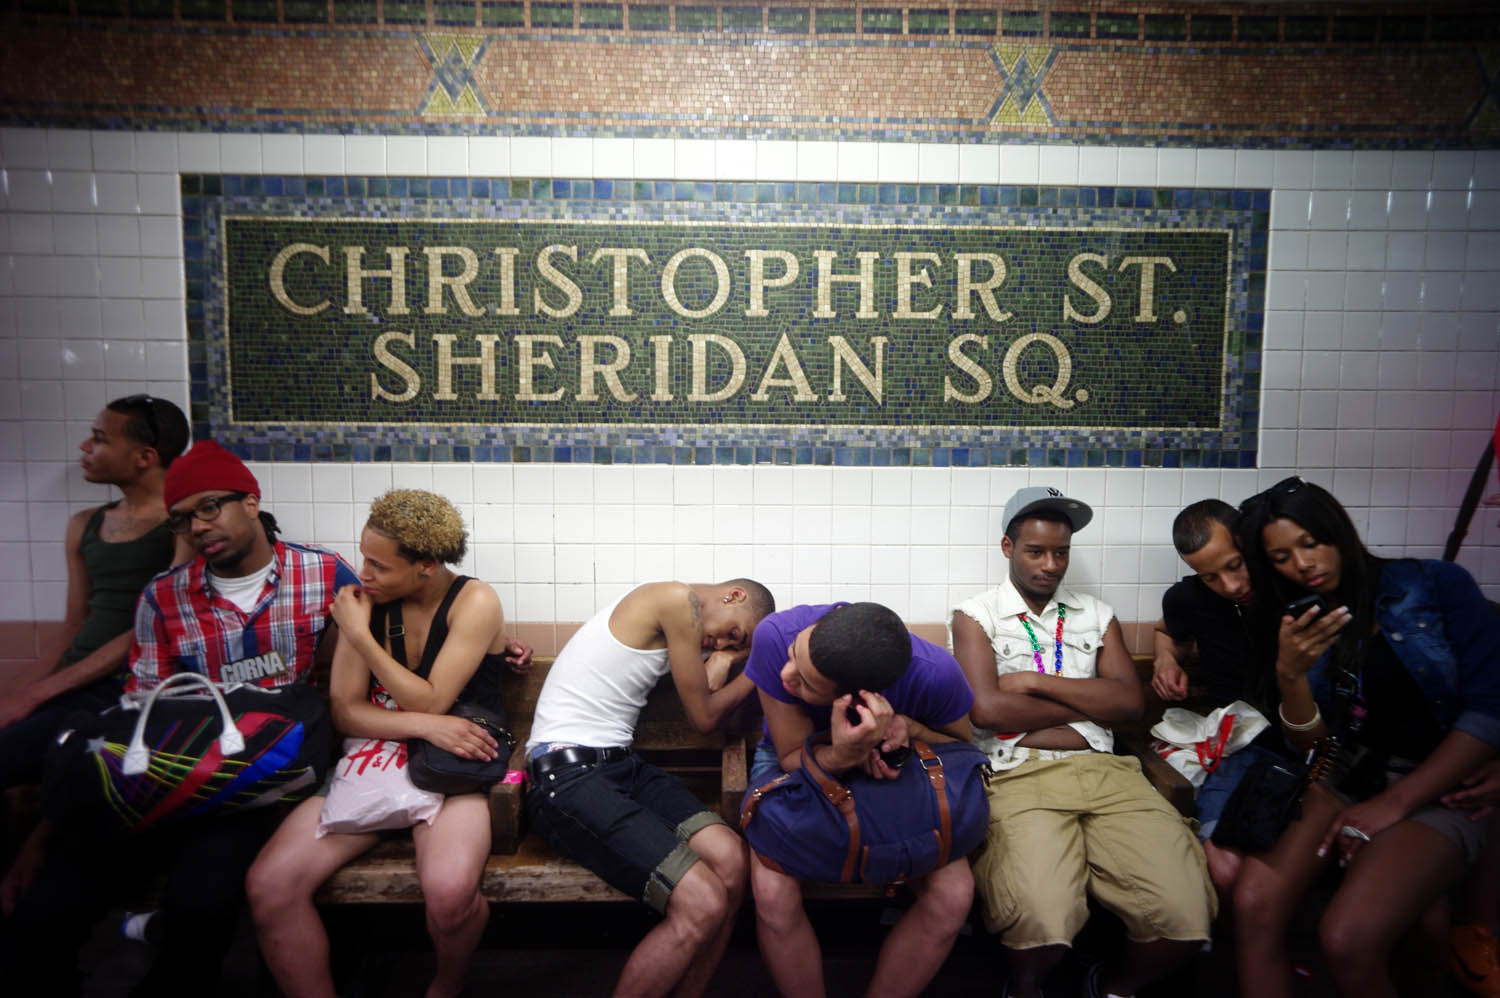 Parade-goers wait for a train home, June 26, 2011.